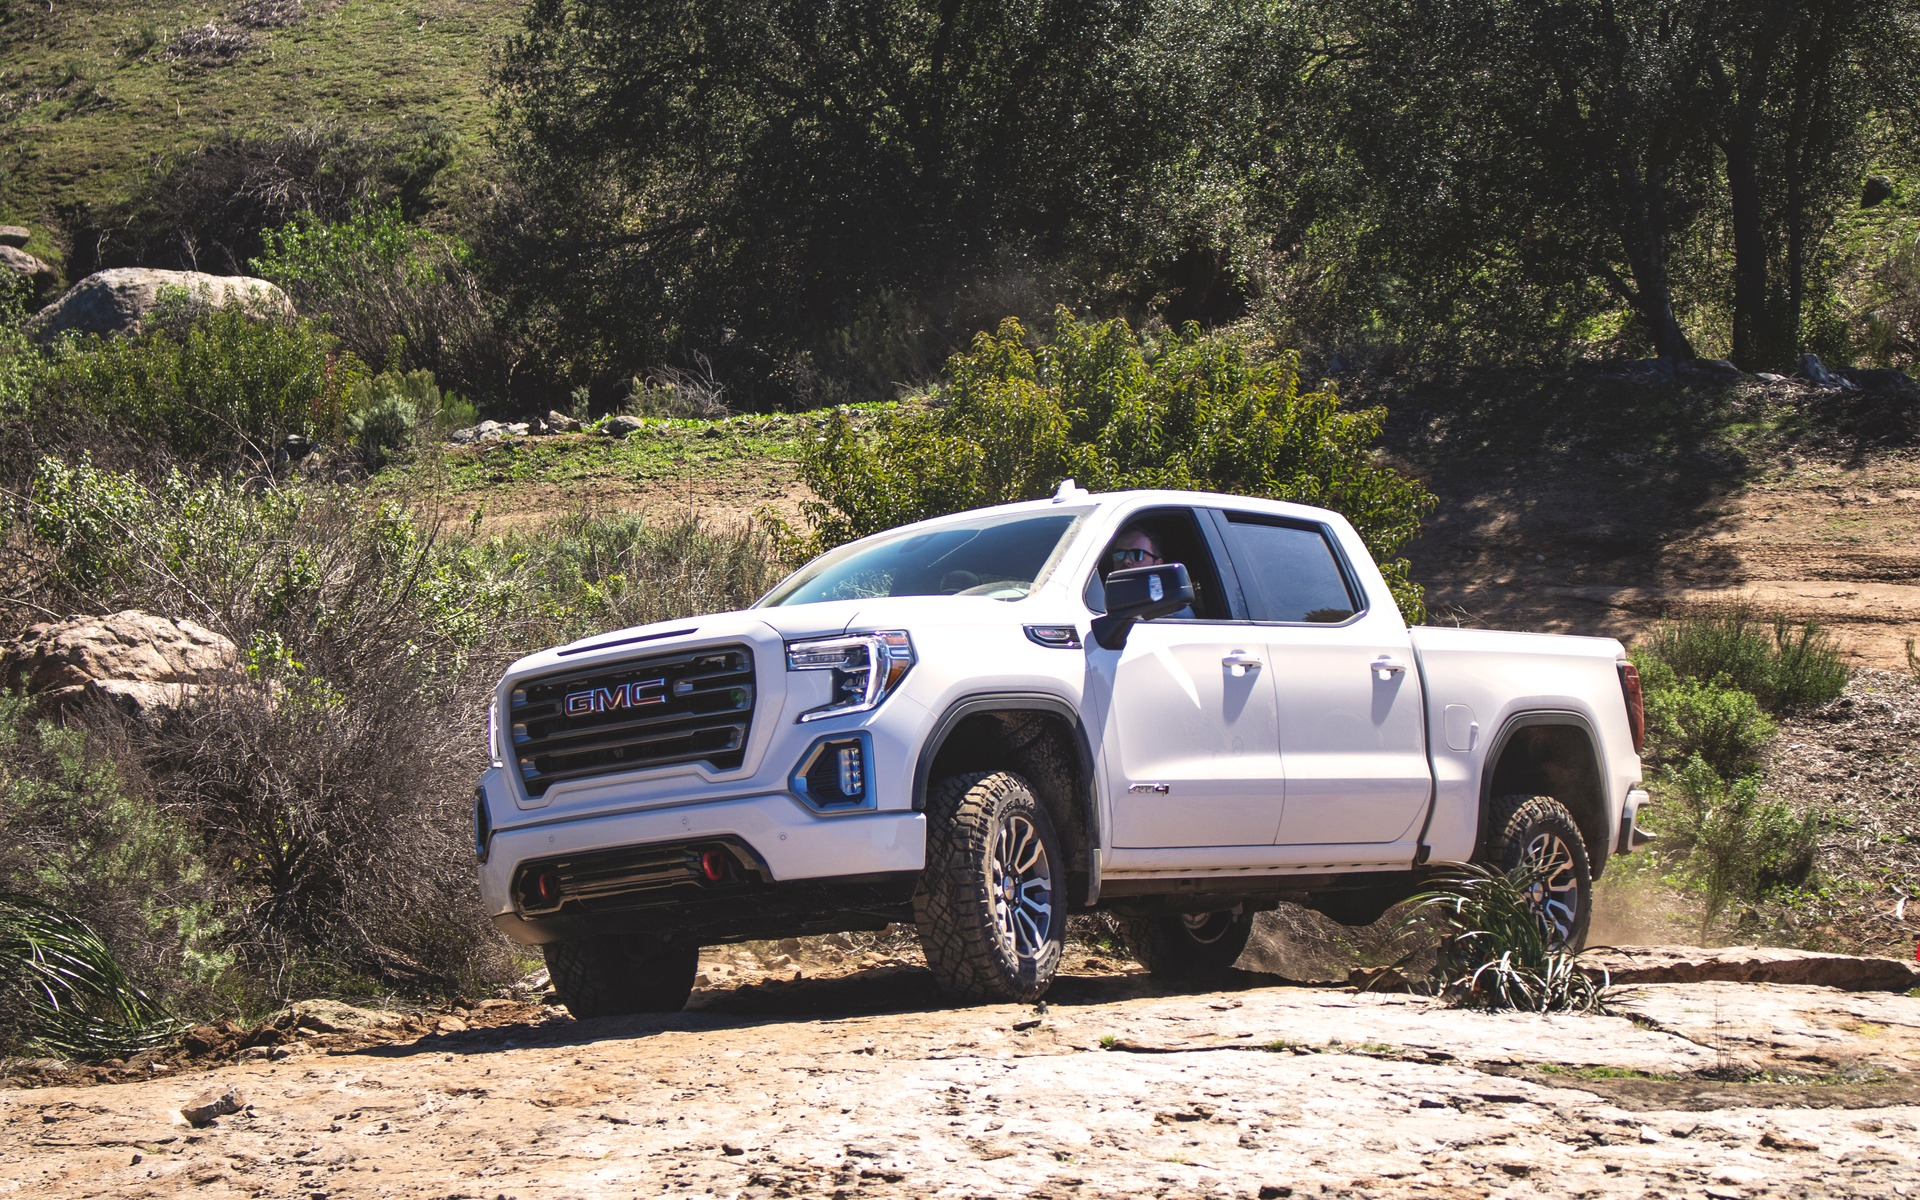 2019 Gmc Sierra 1500 At4 Apocalypse Machine The Car Guide